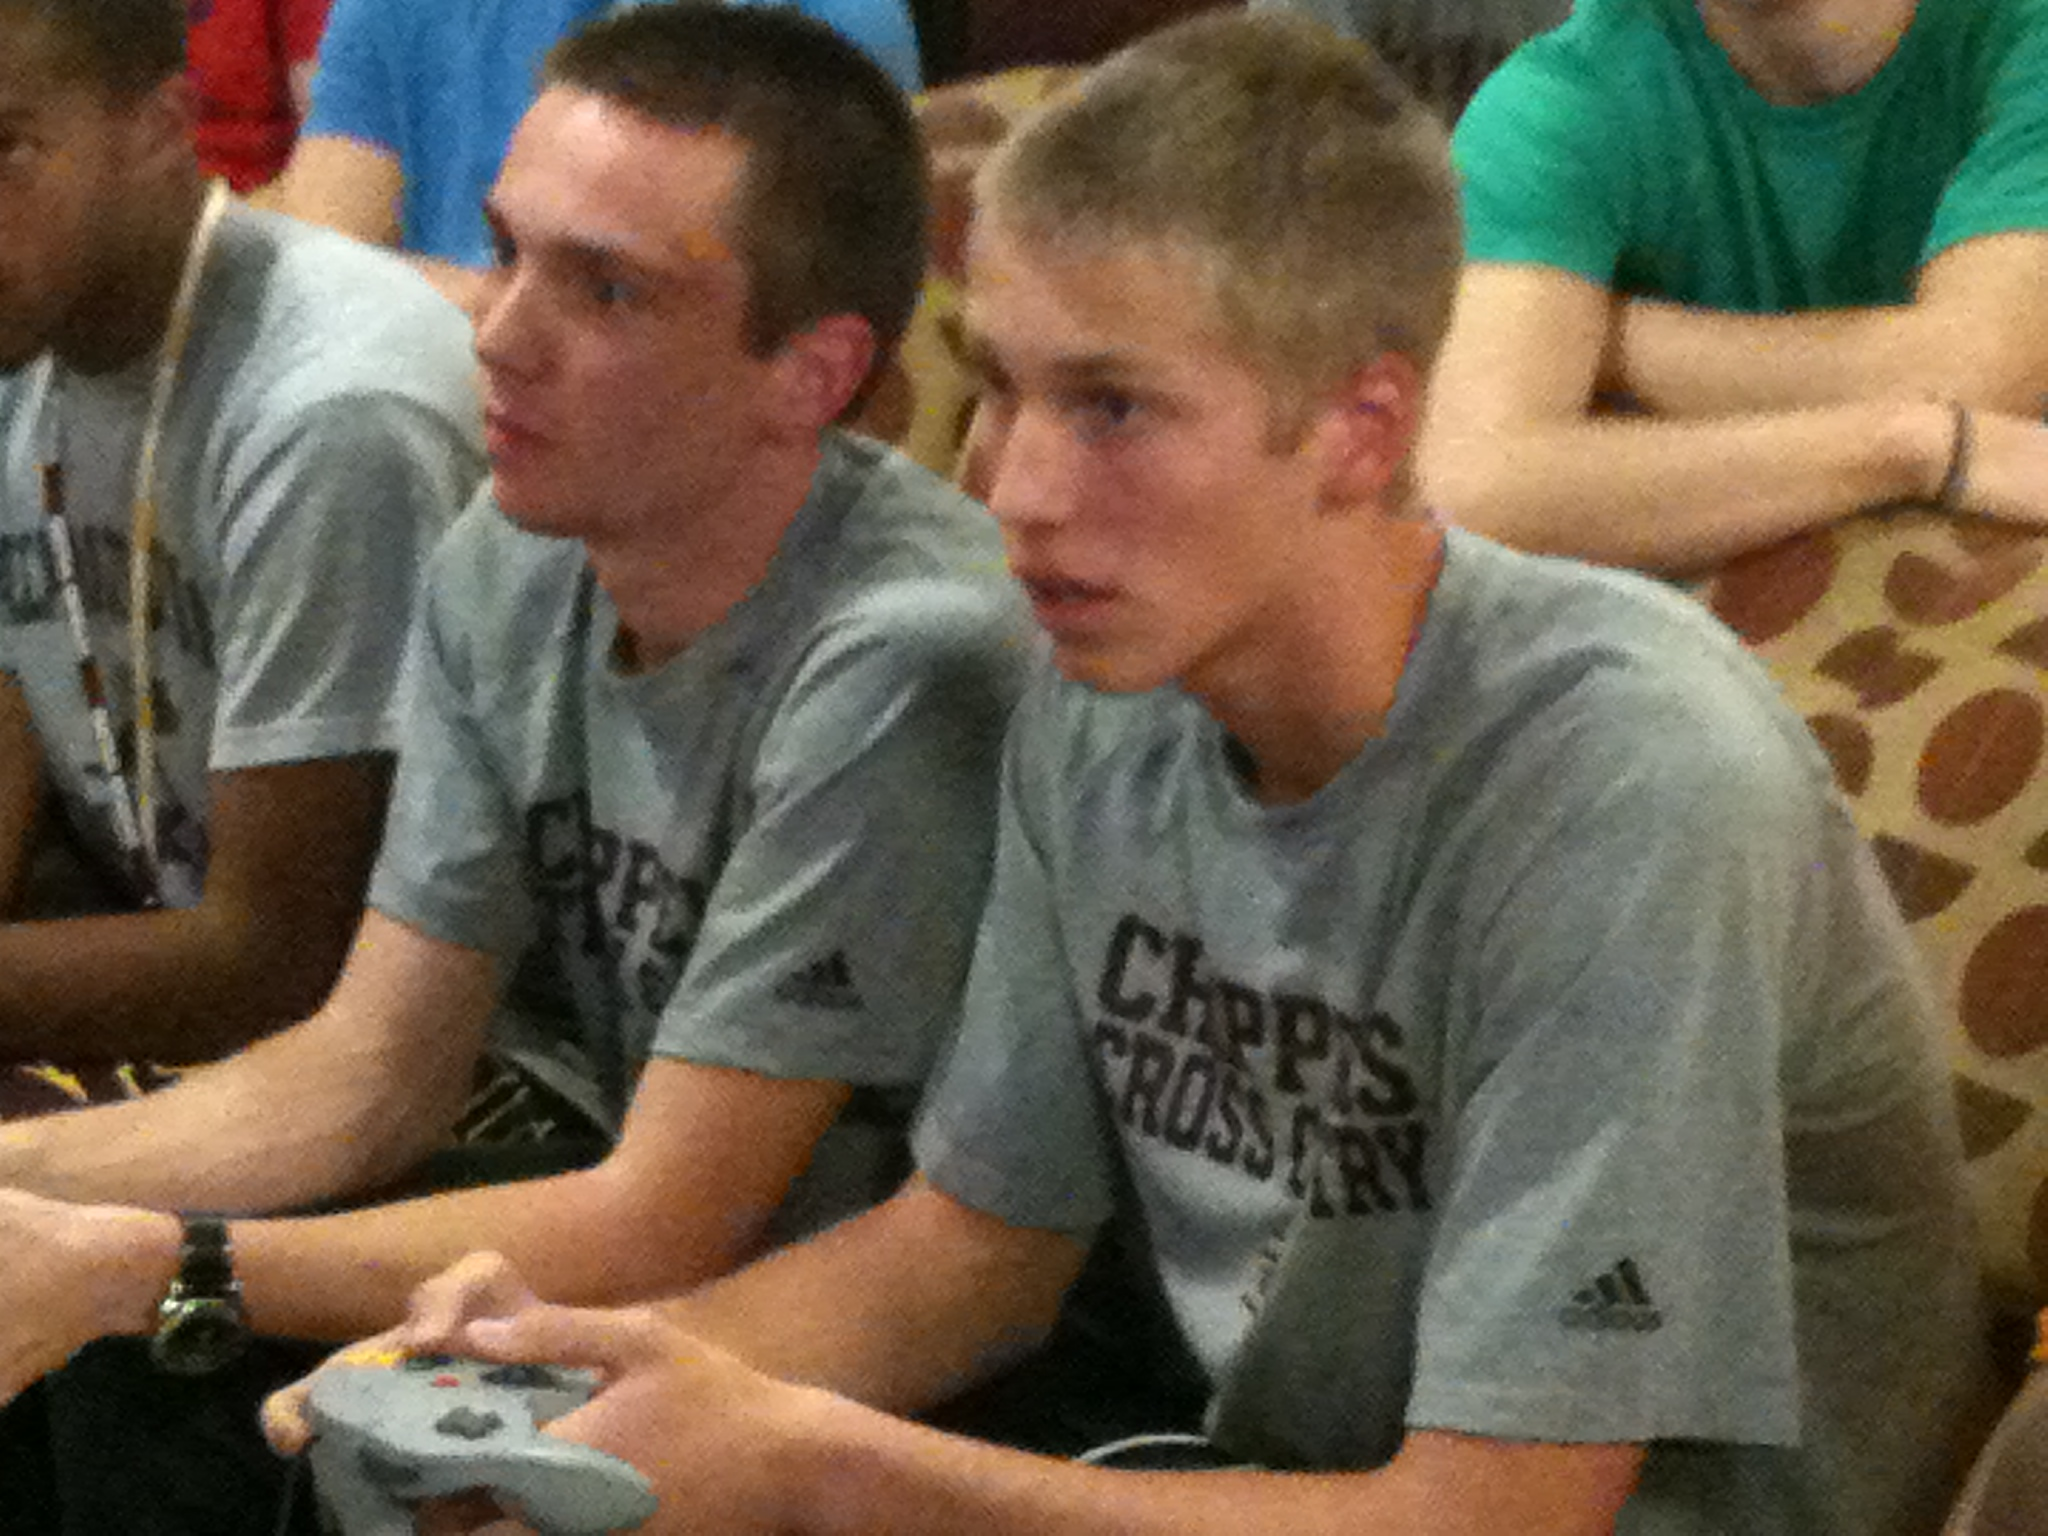 Ben Wynsma (left) and Zach Spreitzer (right) deeply engaged in battle